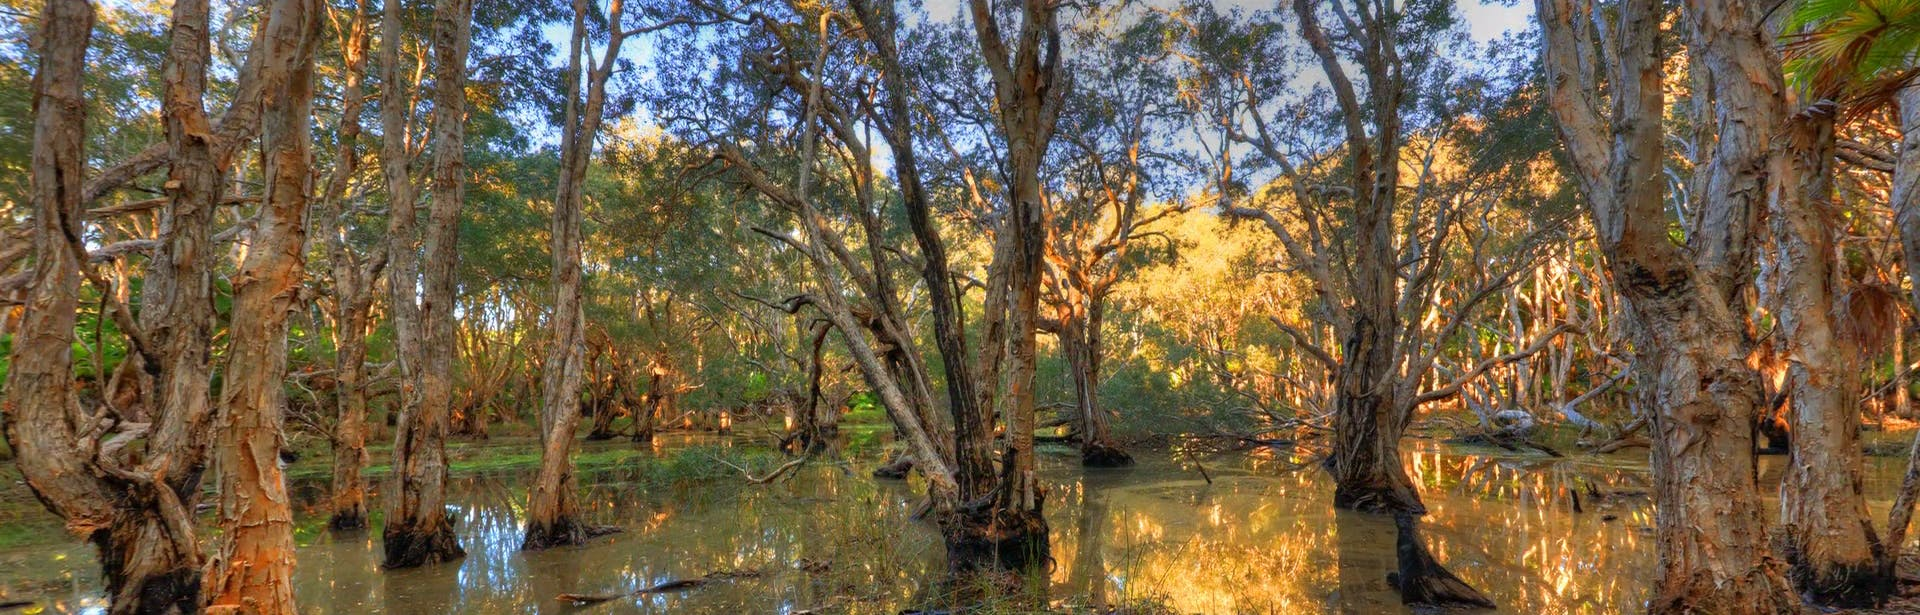 Paperbark Wetlands South West Rocks